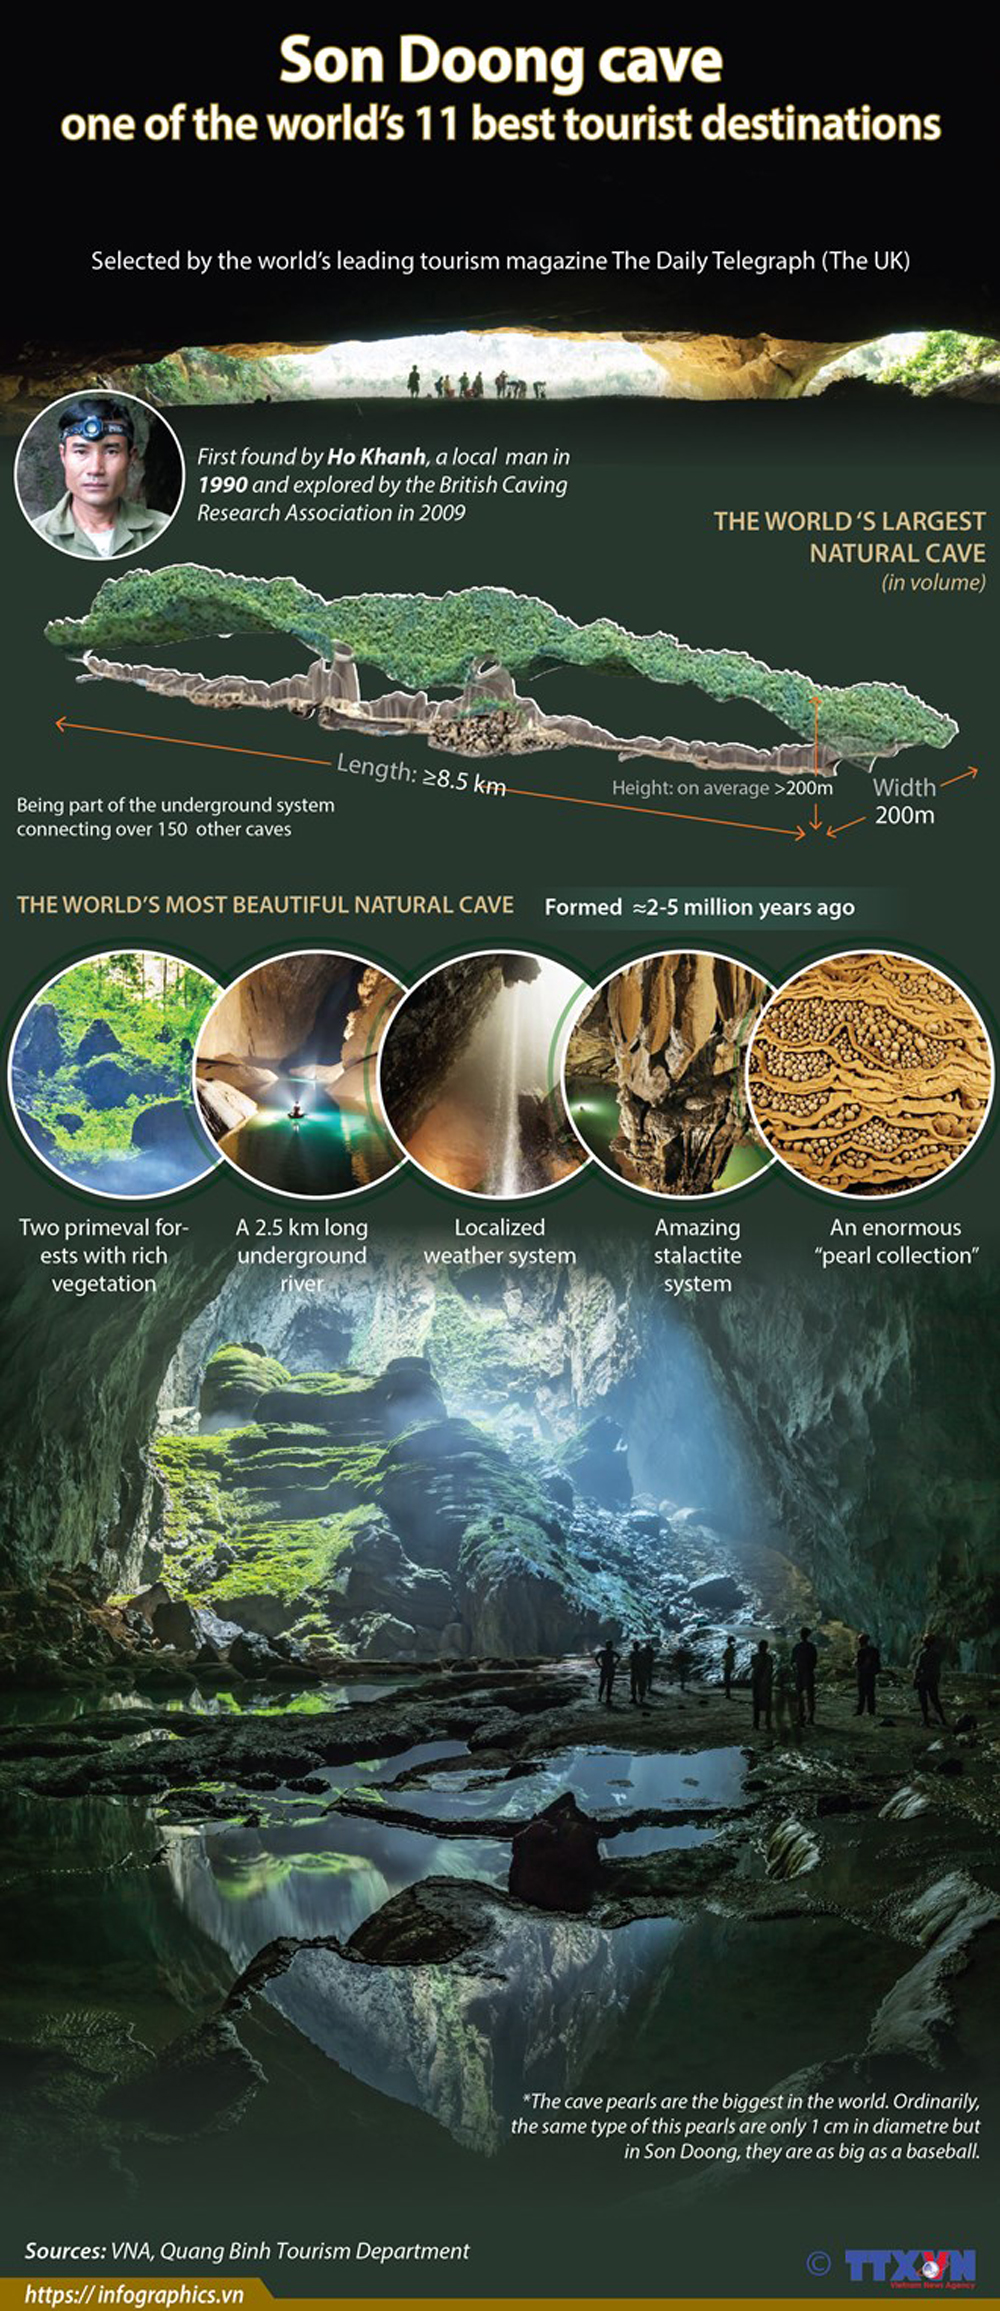 Son Doong cave, 11 best tourist destinations, Son Doong cave, Quang Binh province, Ho Khanh, UK tourism magazine, the Daily Telegraph